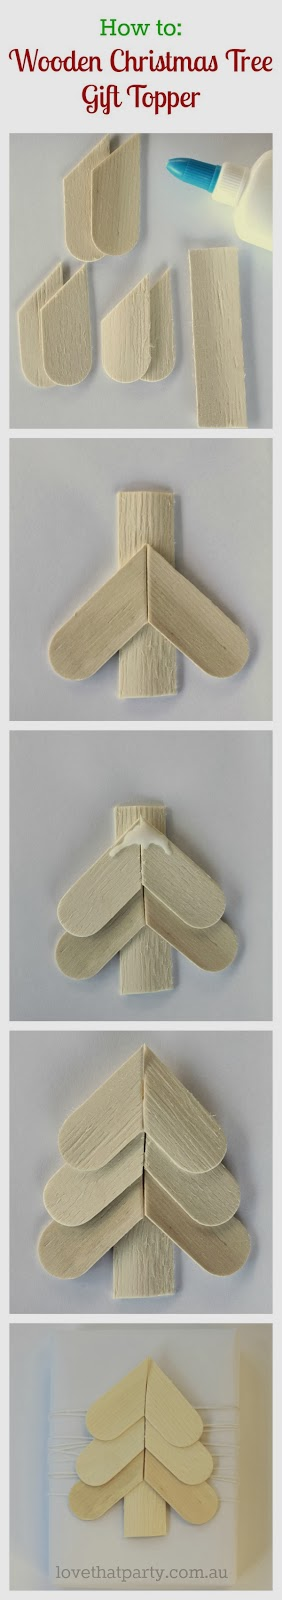 How to: Simple Scandinavian Style Wooden Christmas Tree Gift Topper. www.lovethatparty.com.au